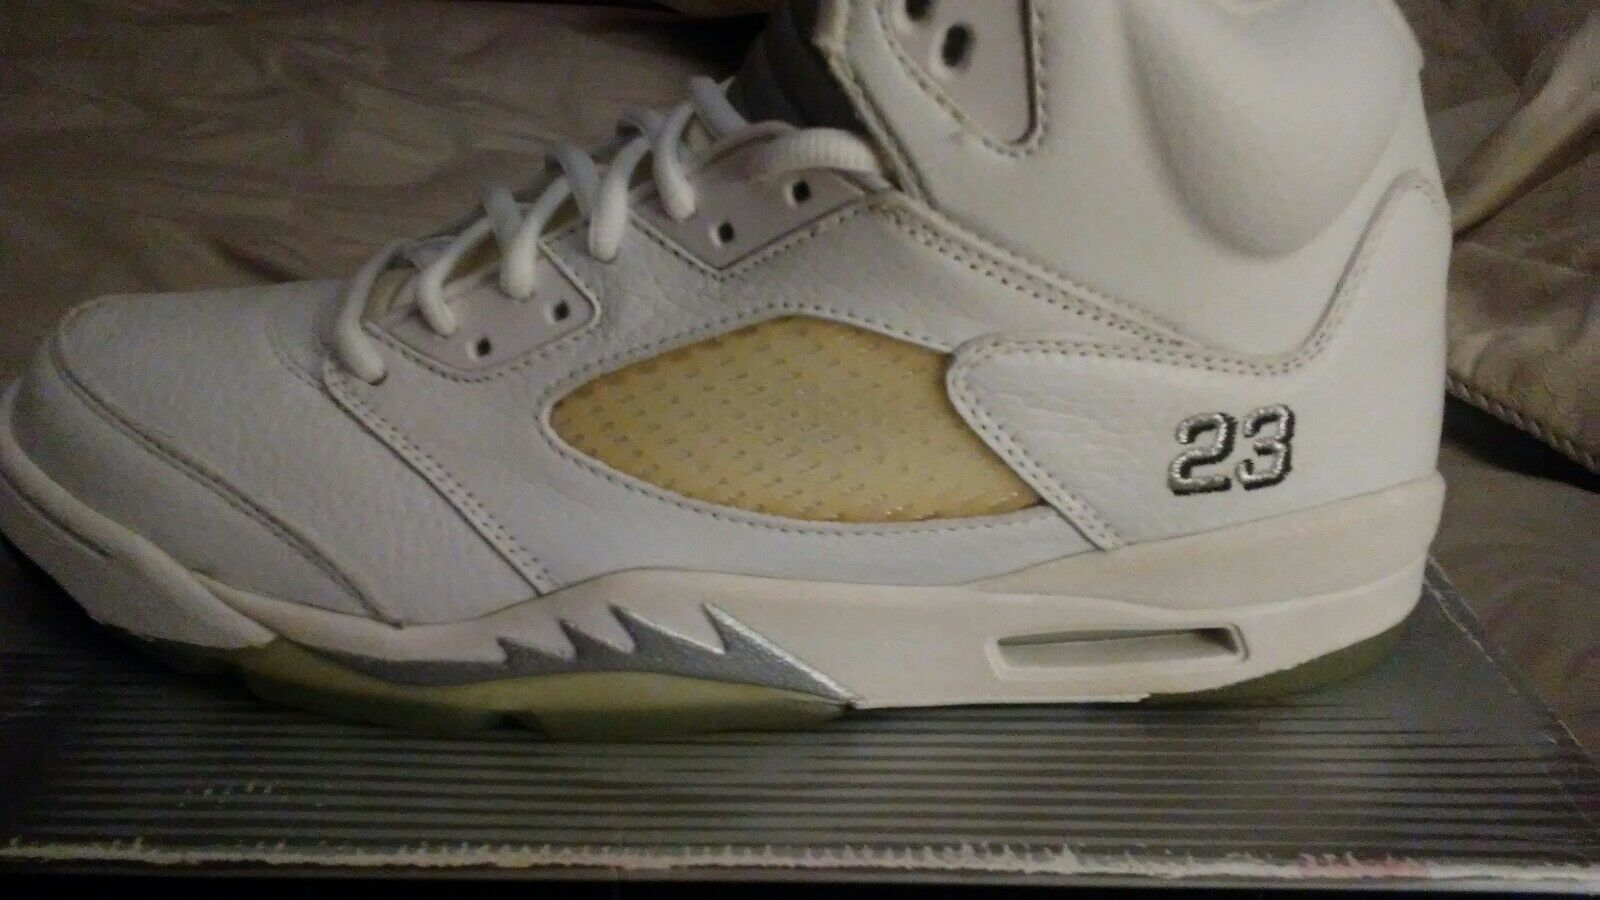 DS OG 2000 White Metallic Jordan 5 with original box, laces, and lace locks